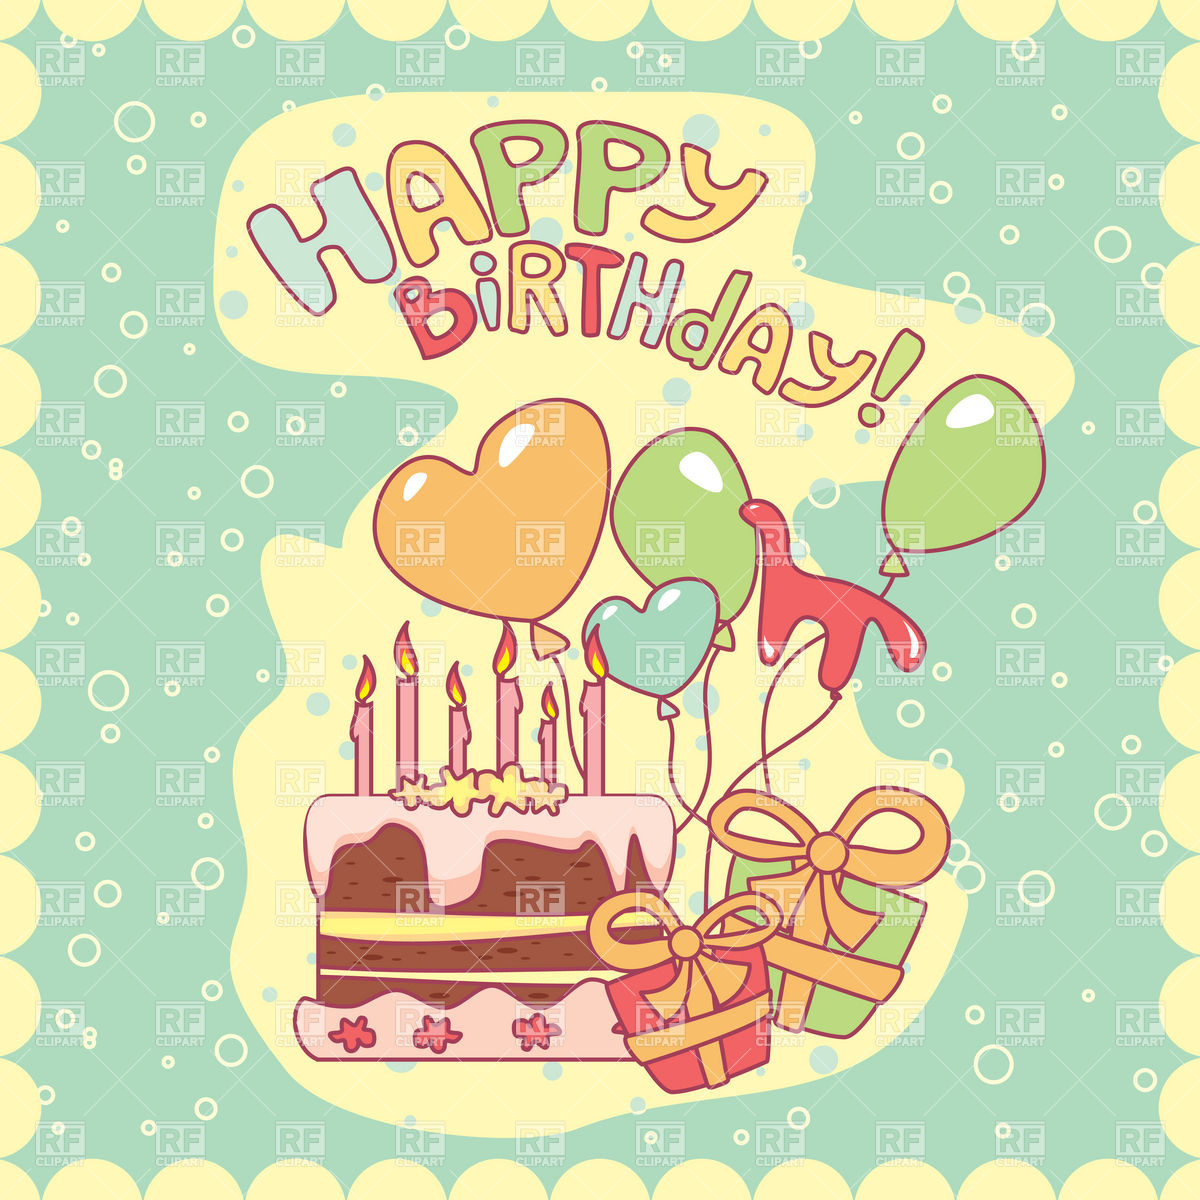 free clipart birthday greetings ; birthday-blue-greeting-card-with-cake-and-balloons-Download-Royalty-free-Vector-File-EPS-40107